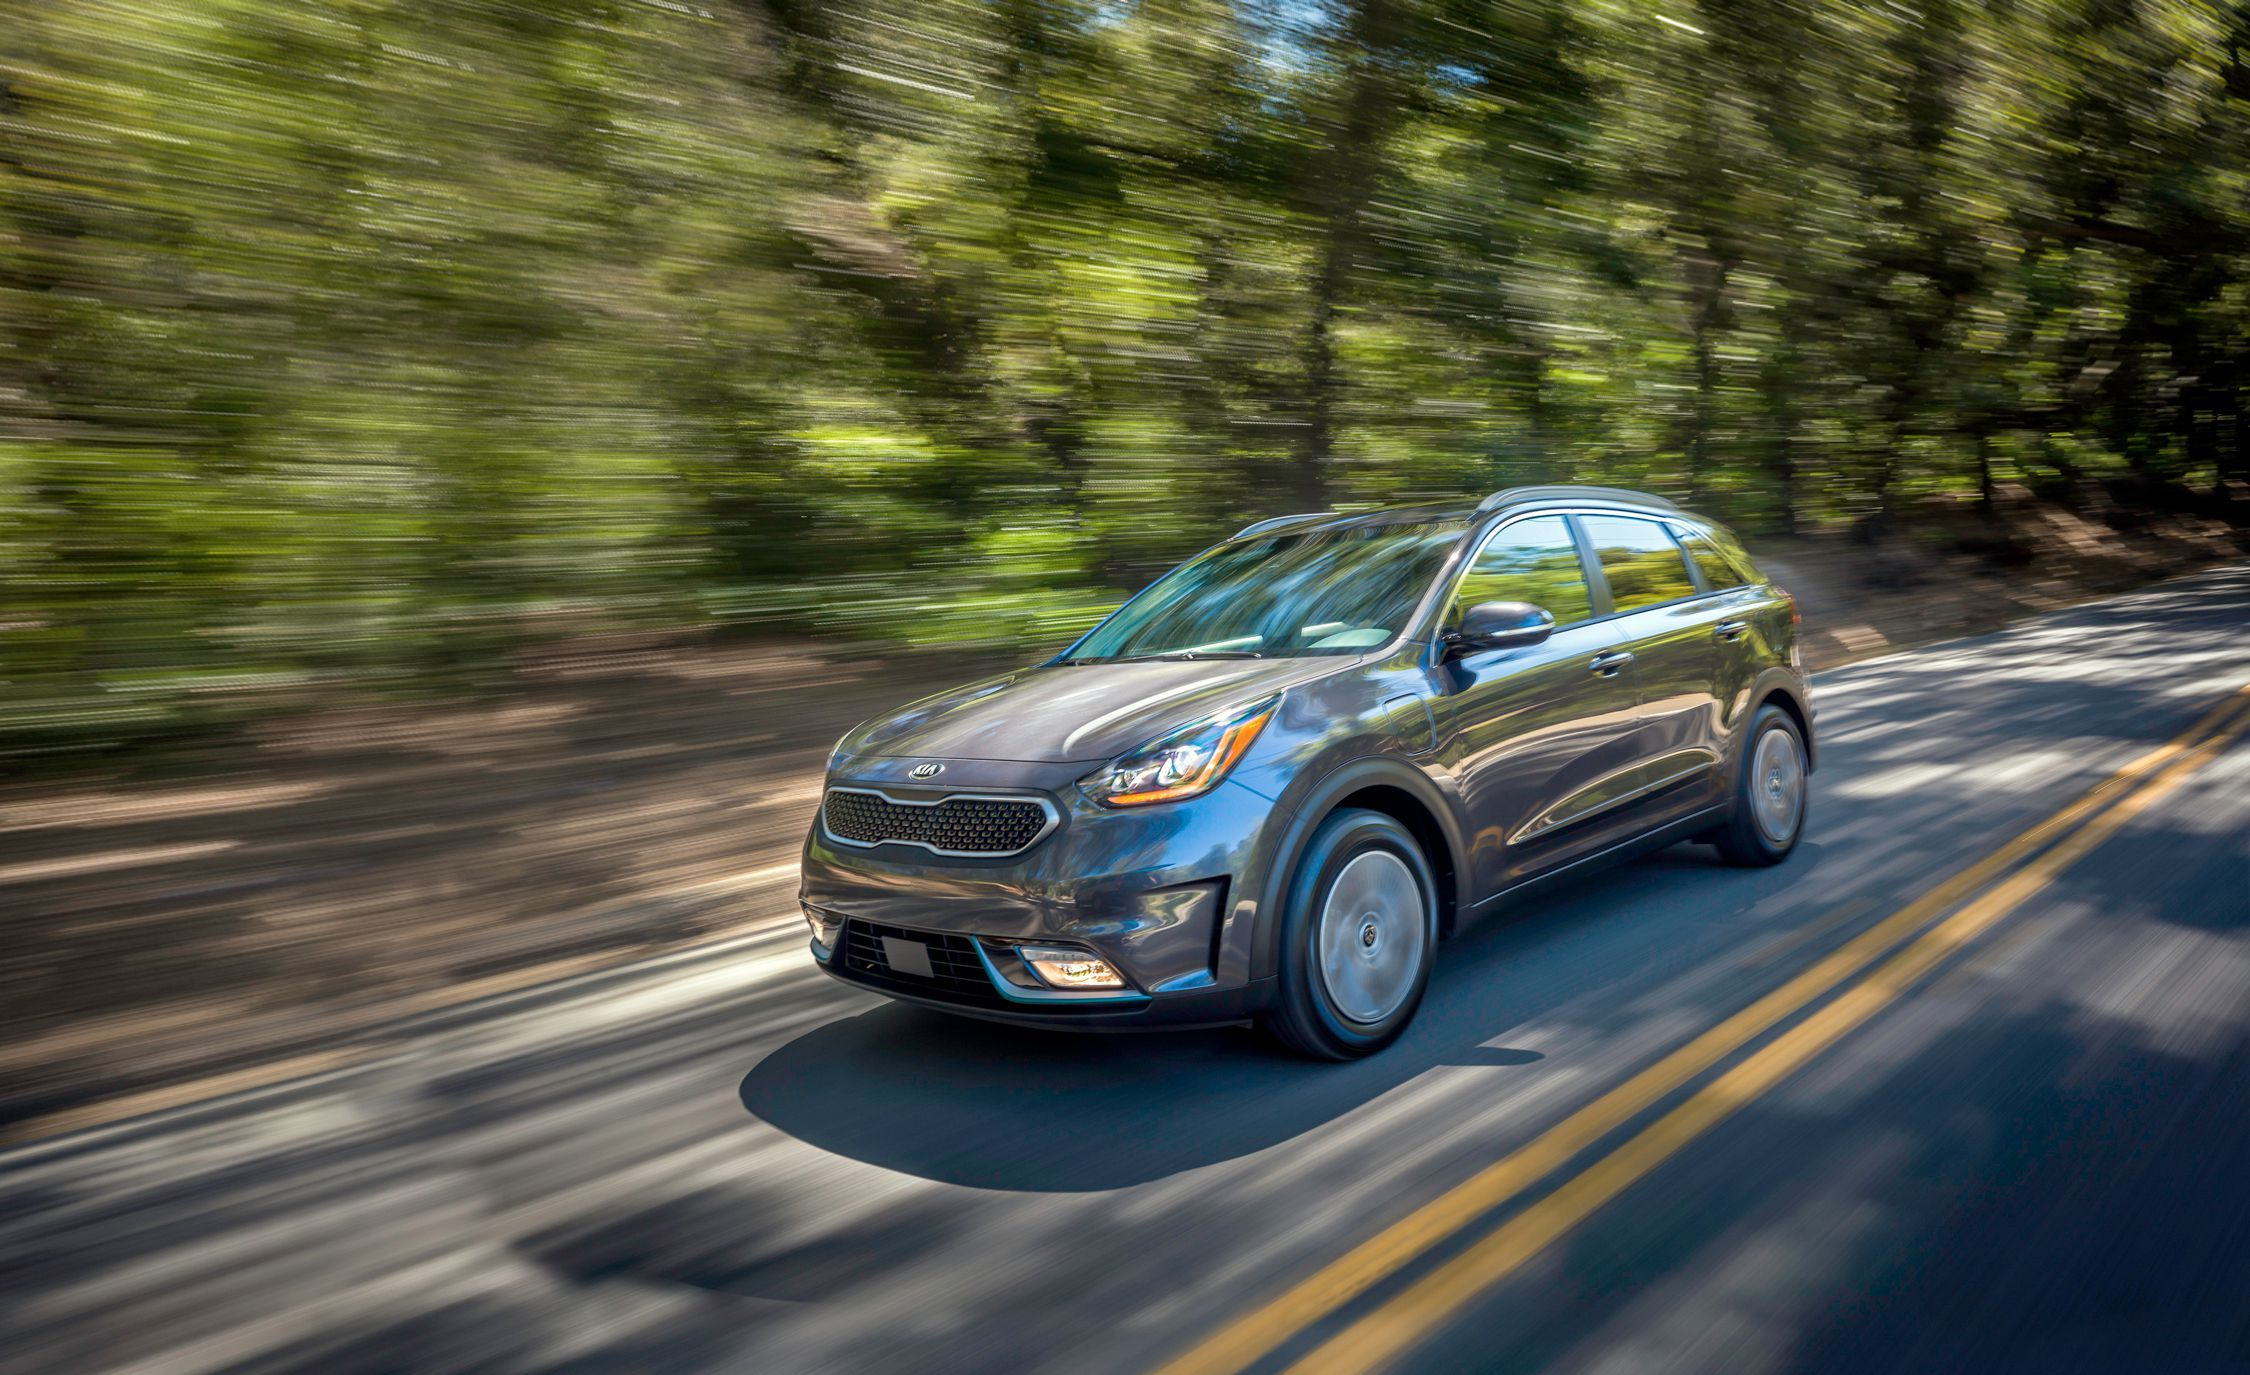 2019 Kia Niro Review, Pricing, And Specs throughout 2021 Kia Niro Plug In Hybrid Electric Feature, Specification Update